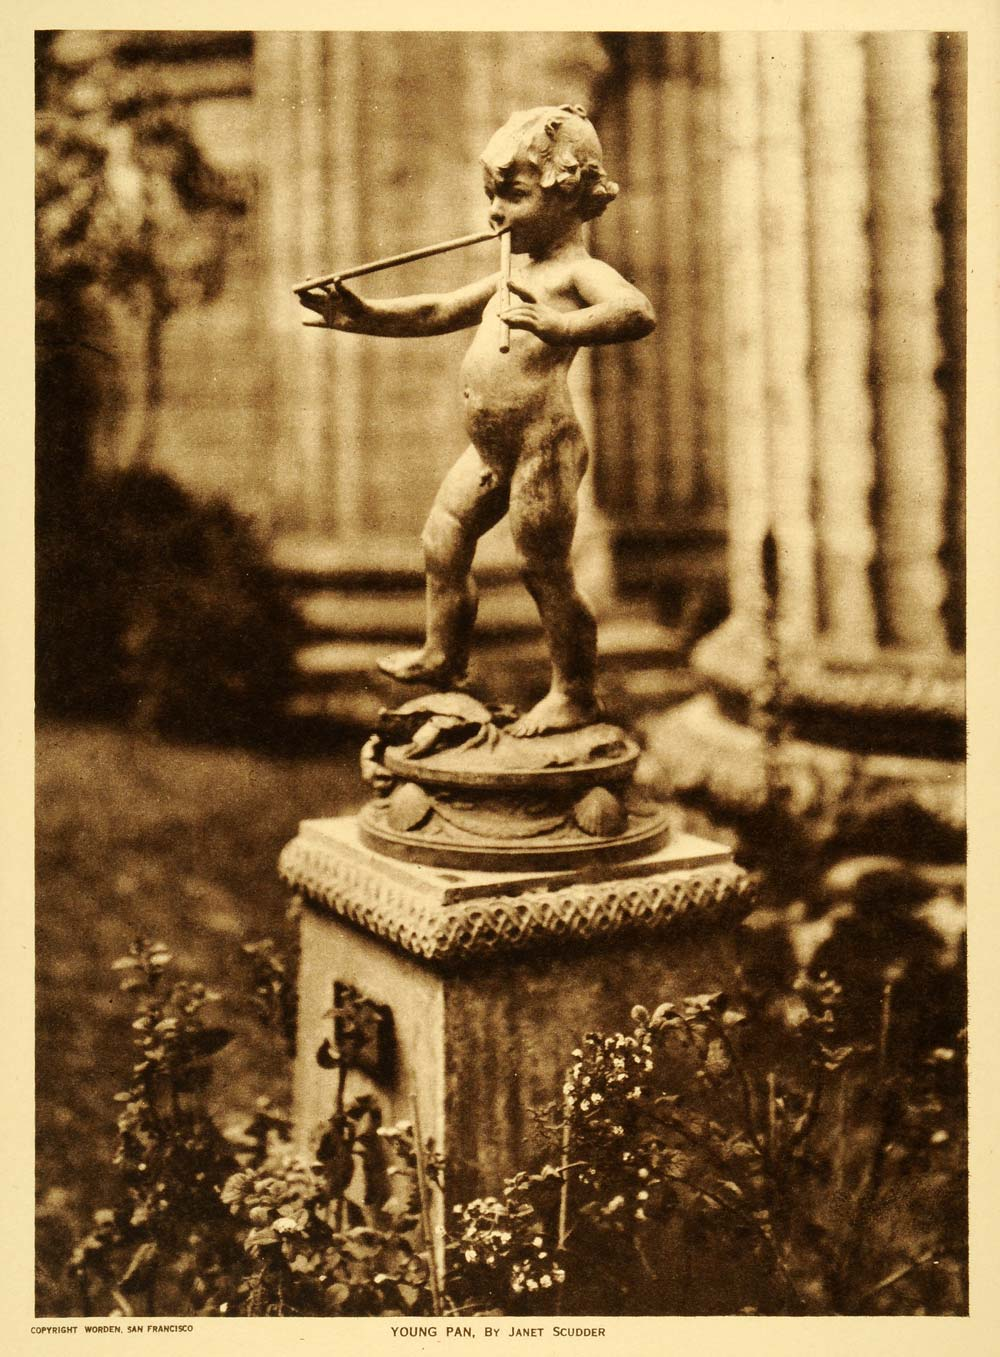 1919 Photogravure Janet Scudder Young Pan Panpipes Nude Statue Sculpture TMM1